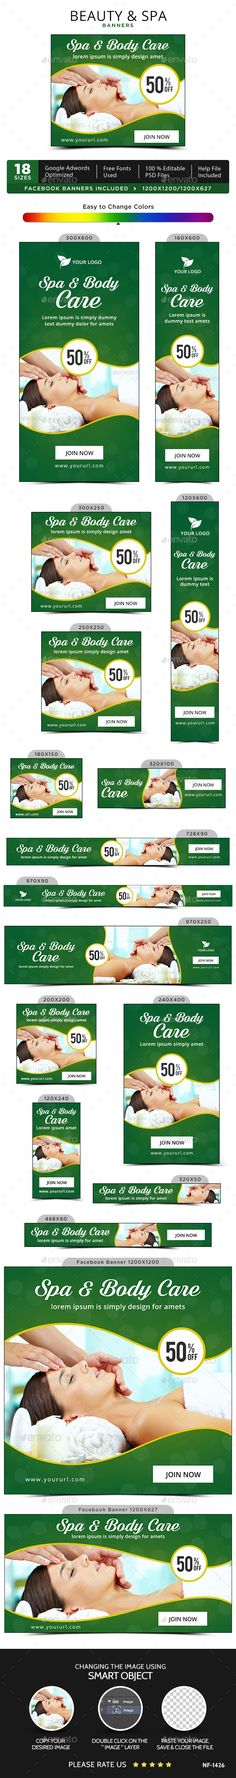 Beauty & Spa Banners Design Template - Banners & Ads Web Template PSD. Download here: https://graphicriver.net/item/beauty-spa-banners/17076242?s_rank=272&ref=yinkira